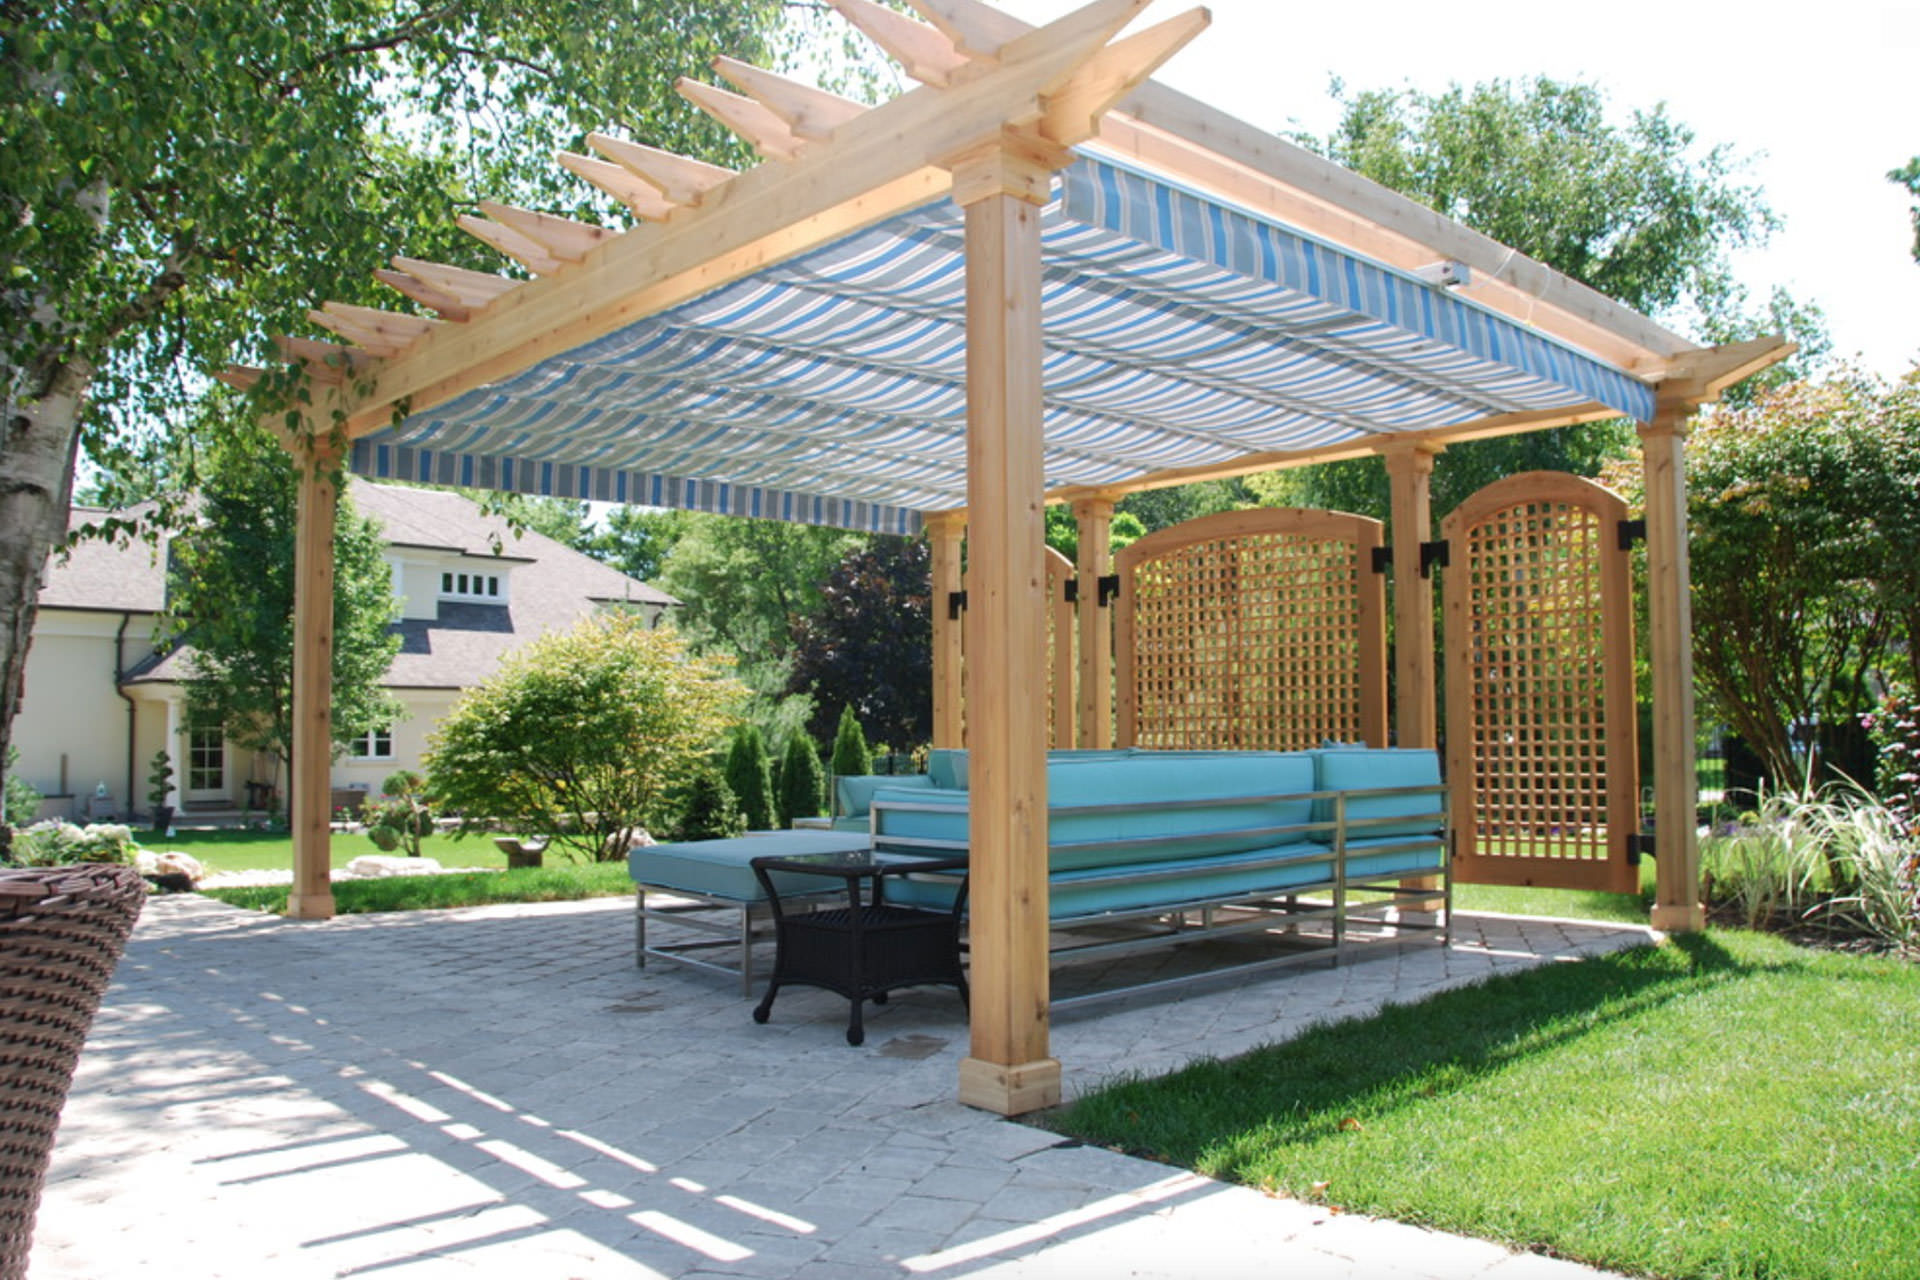 Charming Pergola with Retractable Shade